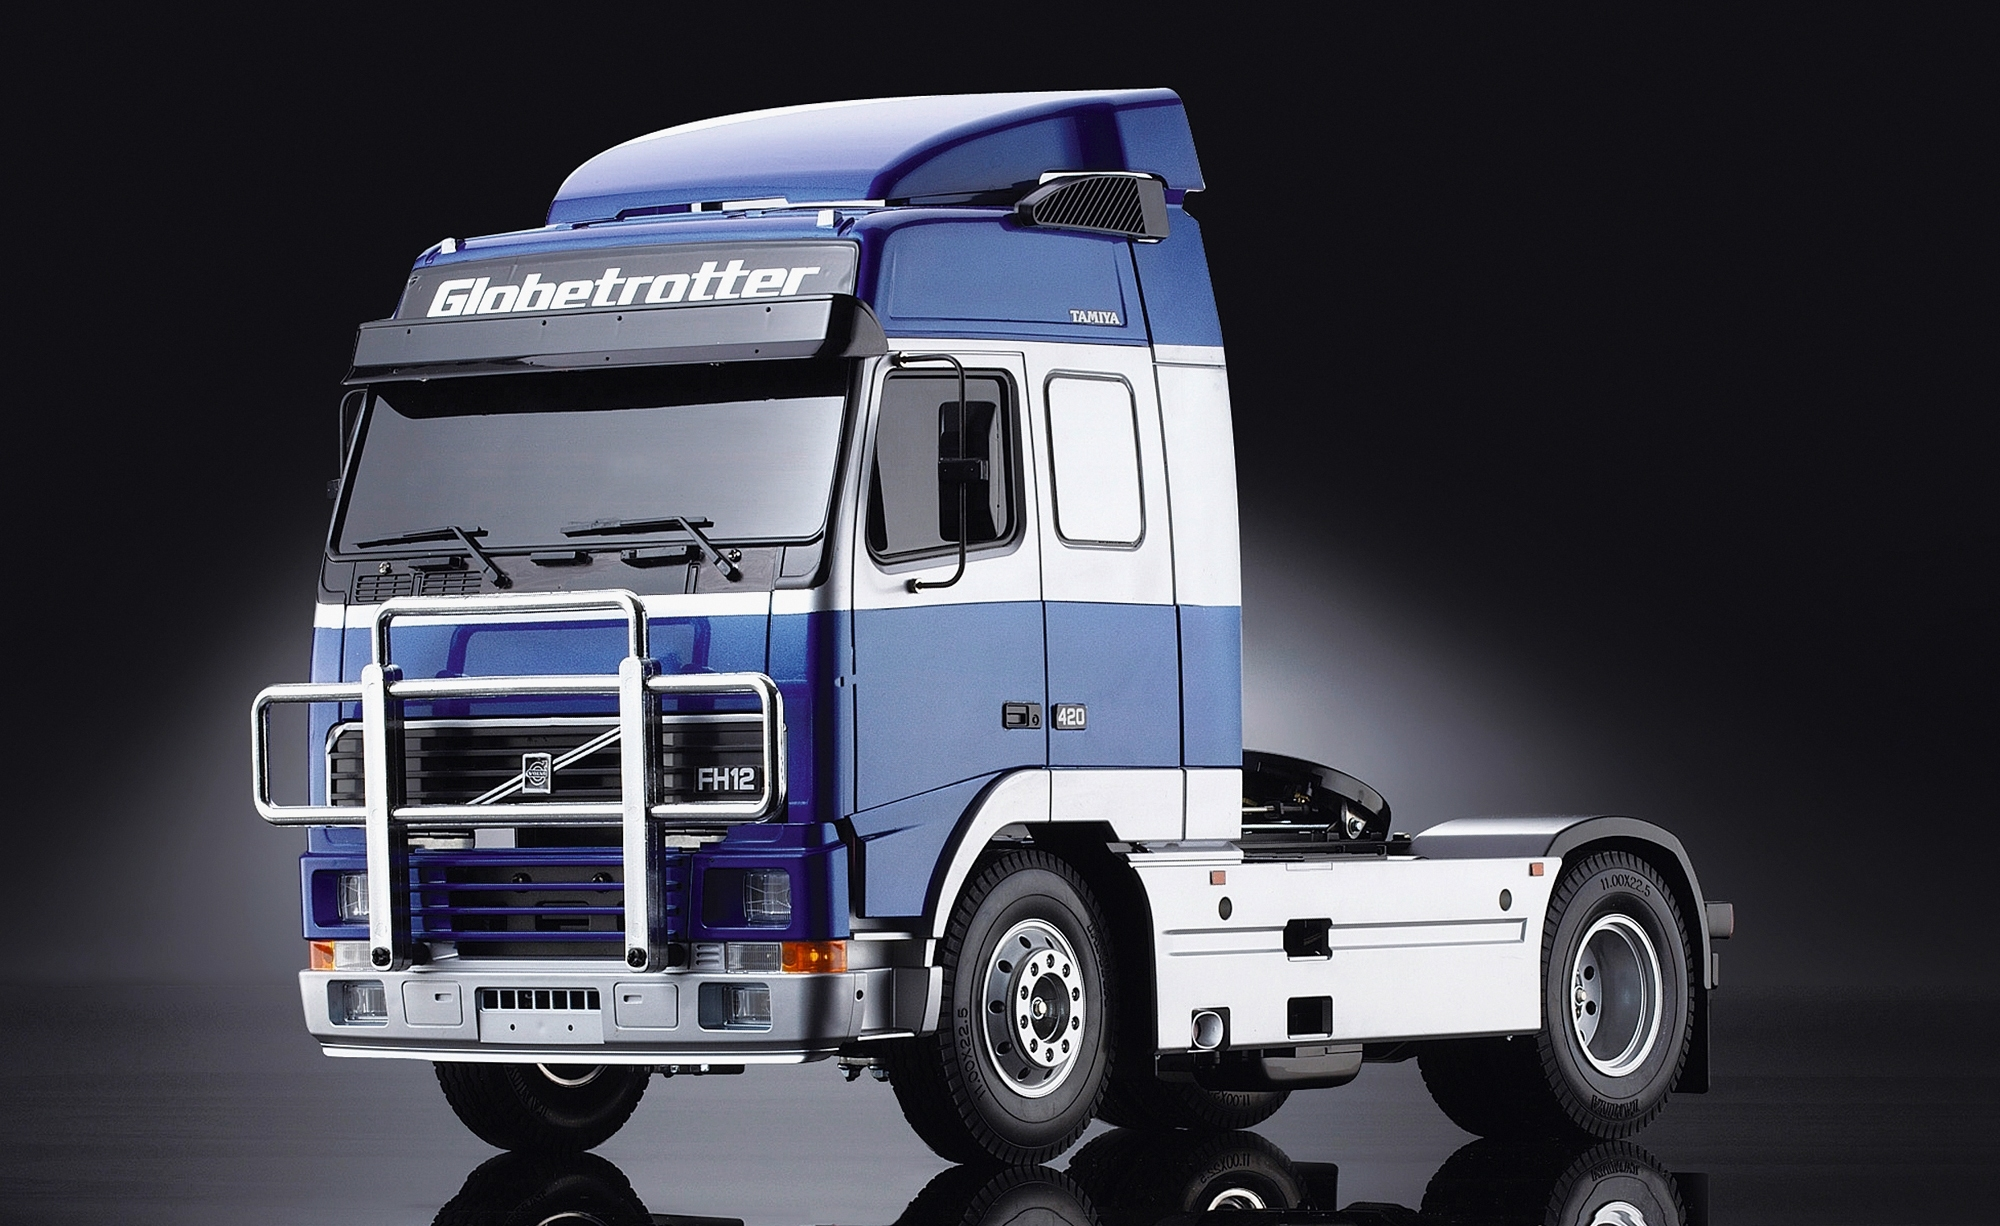 Volvo FH12 Globetrotter